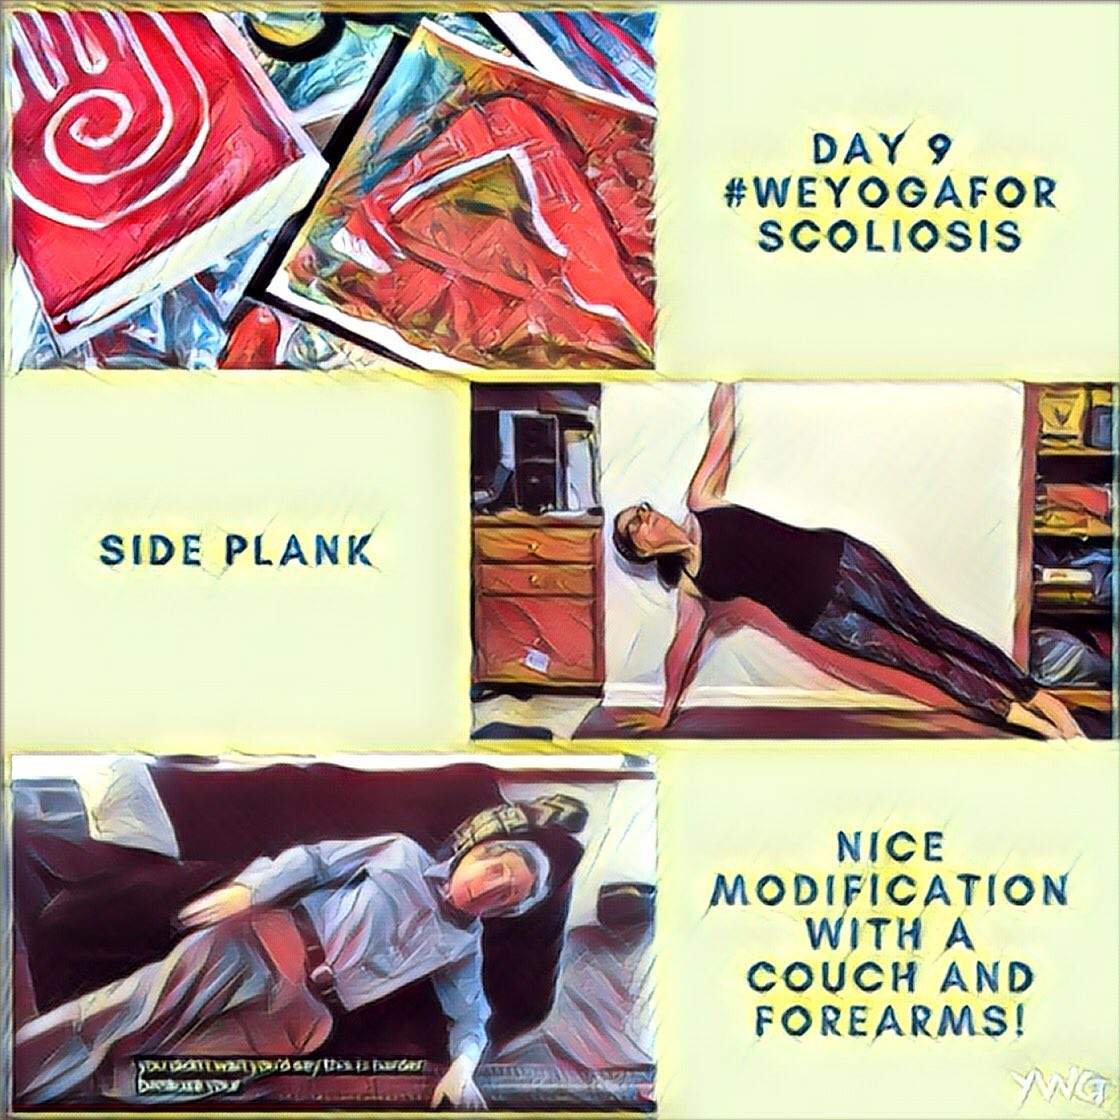 #weyogaforscoliosis Side Plank - Nice modification with a couch and forearms, Dr. Loren Fishman demonstrates! Yoga with Gail. Yoga near me.